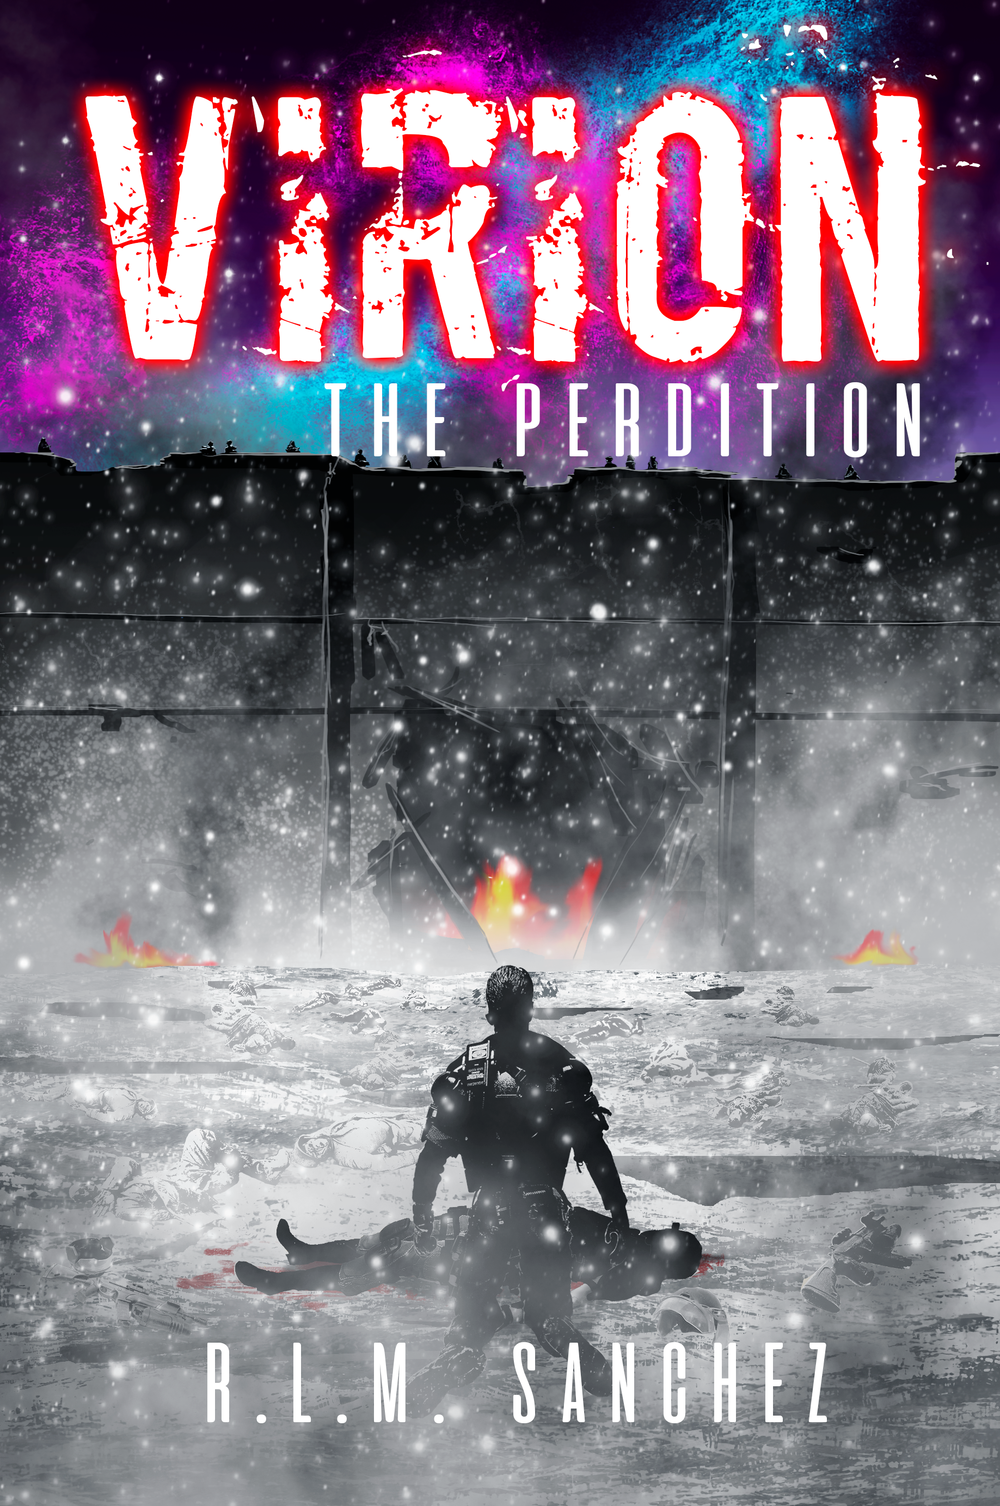 THE PERDITION (BOOK 4 of the VIRION SERIES) - Now Available!In McKenna's war between himself, Freedom City, and the Golden Bough, he will learn that being human will kill you...Elliot Draeger, once an Earth Federation scientist, was once motivated by curing the Black Cell. As a man of science, there was no solution he could not pursue in the name of human betterment. Now, years later, he has emerged as The Commander with a burning hatred for the Revente. Now he has created a new prize, Renatus, a genetically selective cure to the Black Cell, and he will risk everything to protect it. Armed with a deadly alliance with the notorious undercity gang Wargame, the naval might of the Tianglong Group, and the confidence of an ancient Order, Draeger aims to spark an uprising with the goal of uniting Earth against the Revente, Earth already sharing an animosity with the spacefaring species.After being blackballed by the Earth Council, McKenna invokes the Seventh Mandate, the secret directive of an Earth Marshal to break all established laws in order to preserve the greater good, and uses it to hunt Draeger with the full force of Interpol's ISTF Division. But unknown to him, Draeger is calculated, experienced, and blinded by vision while McKenna is tranced with correcting a past that cannot be undone. An idea has poisoned them both and nothing will stop them from meeting their fates.McKenna makes a final attempt to fulfill the wish of his dead lover, to be more than human. But in a world where such ideas kill the innocent and make villians of individuals, will McKenna save Freedom City from the grips of a new plague fueled insurrection, or die trying? The conclusion to the Virion series ends in The Perdition.